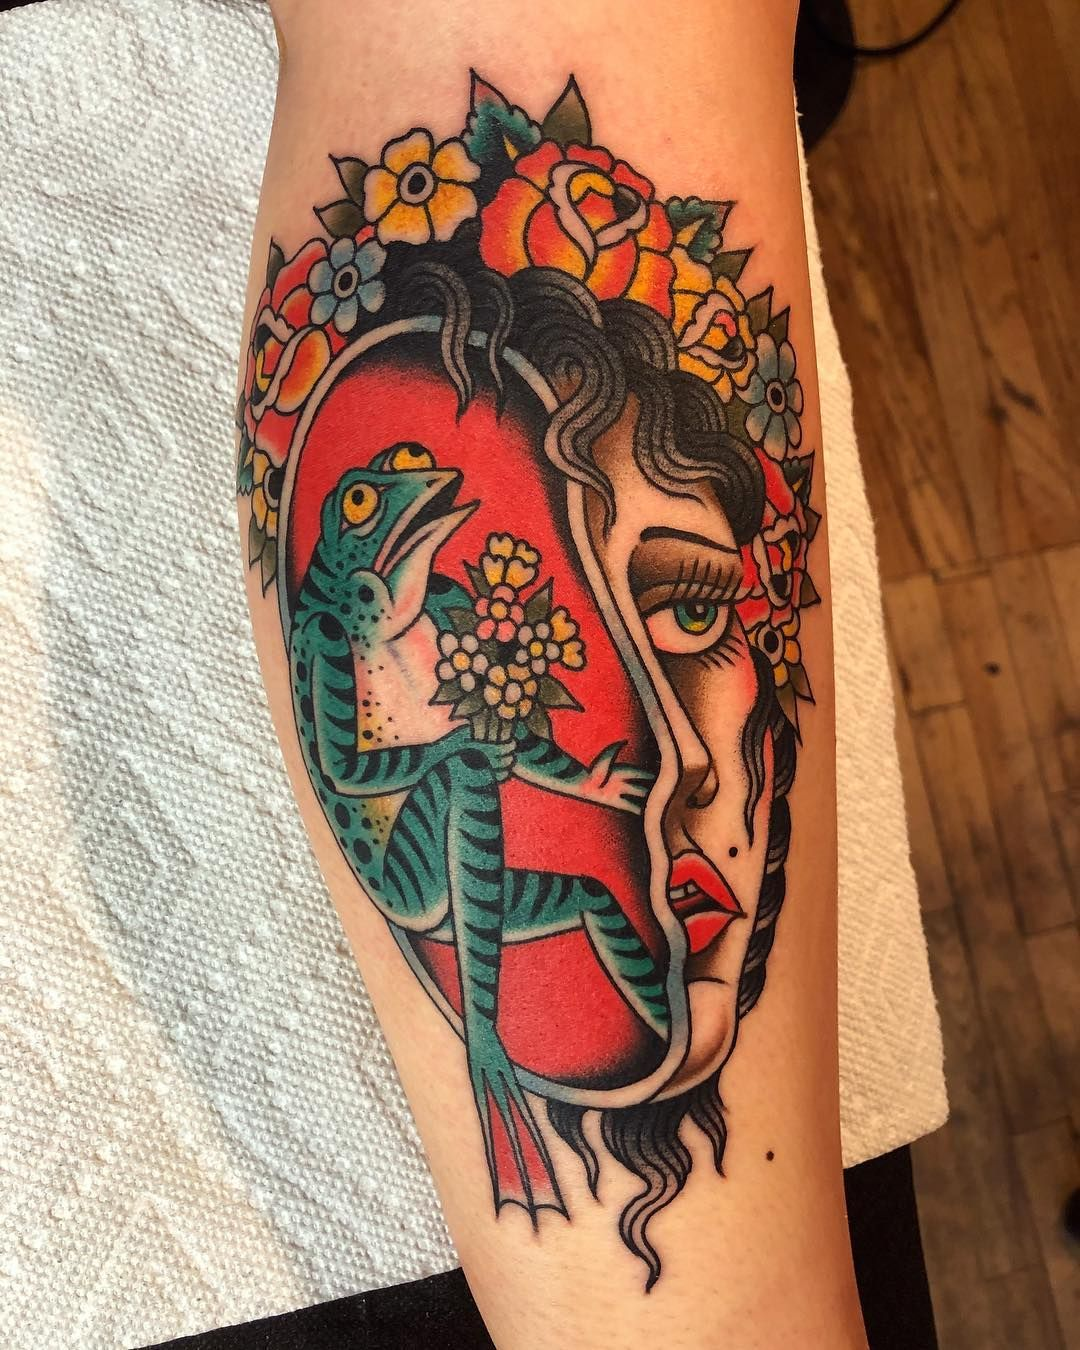 Gregory whitehead unusual traditional tattoo